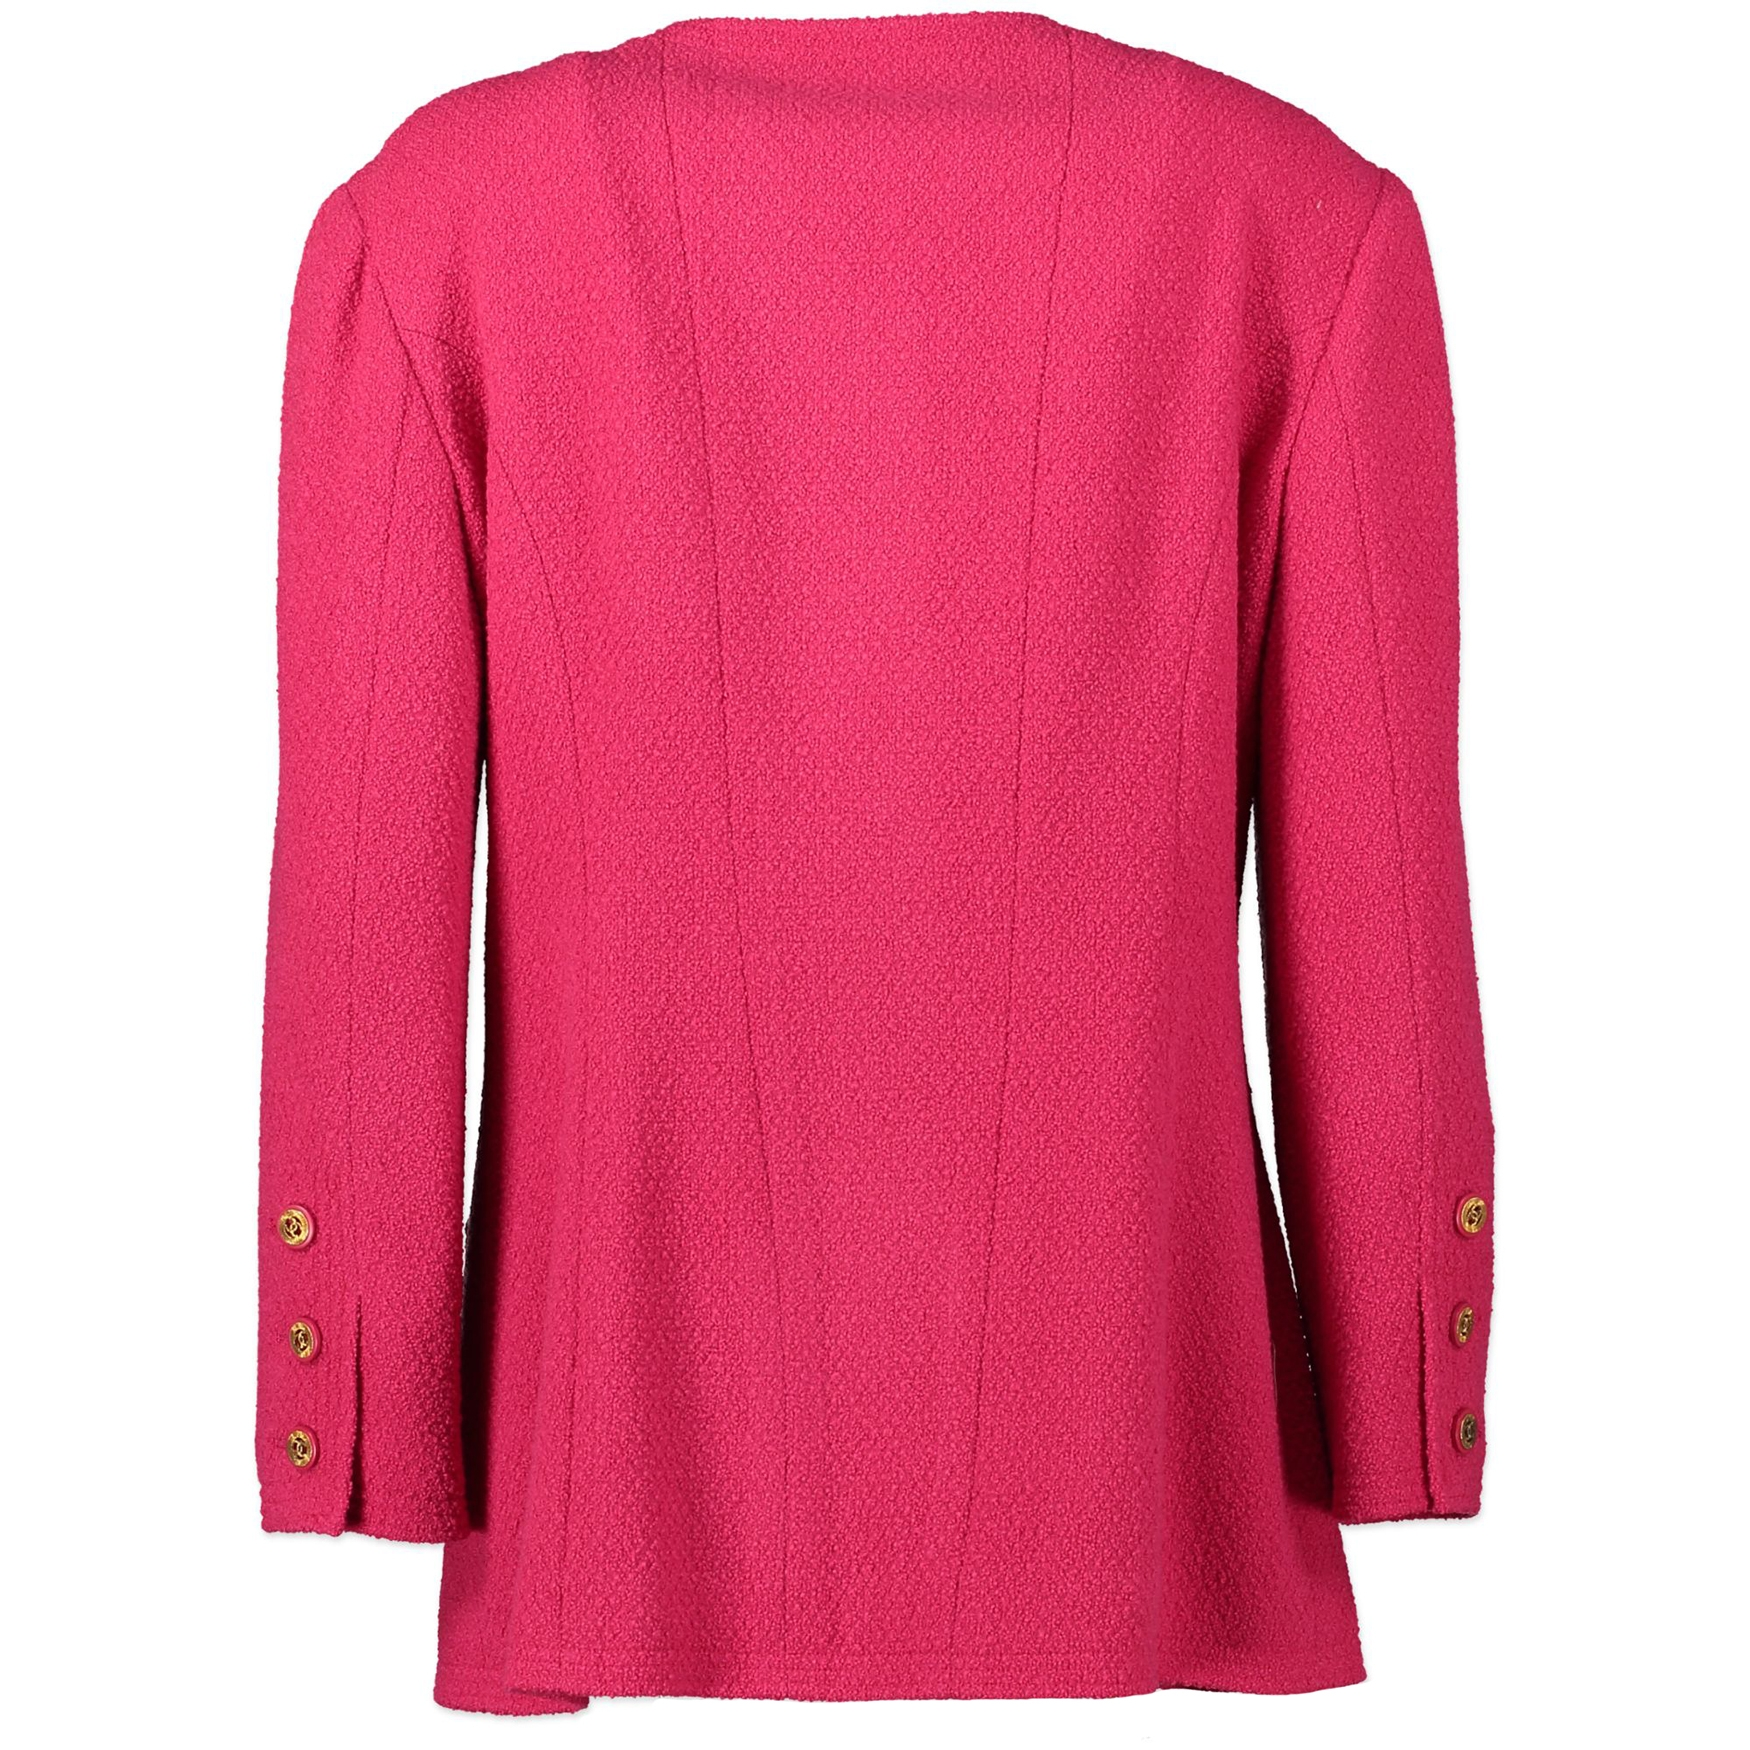 Chanel Fuschia Tweed Jacket - Size 40